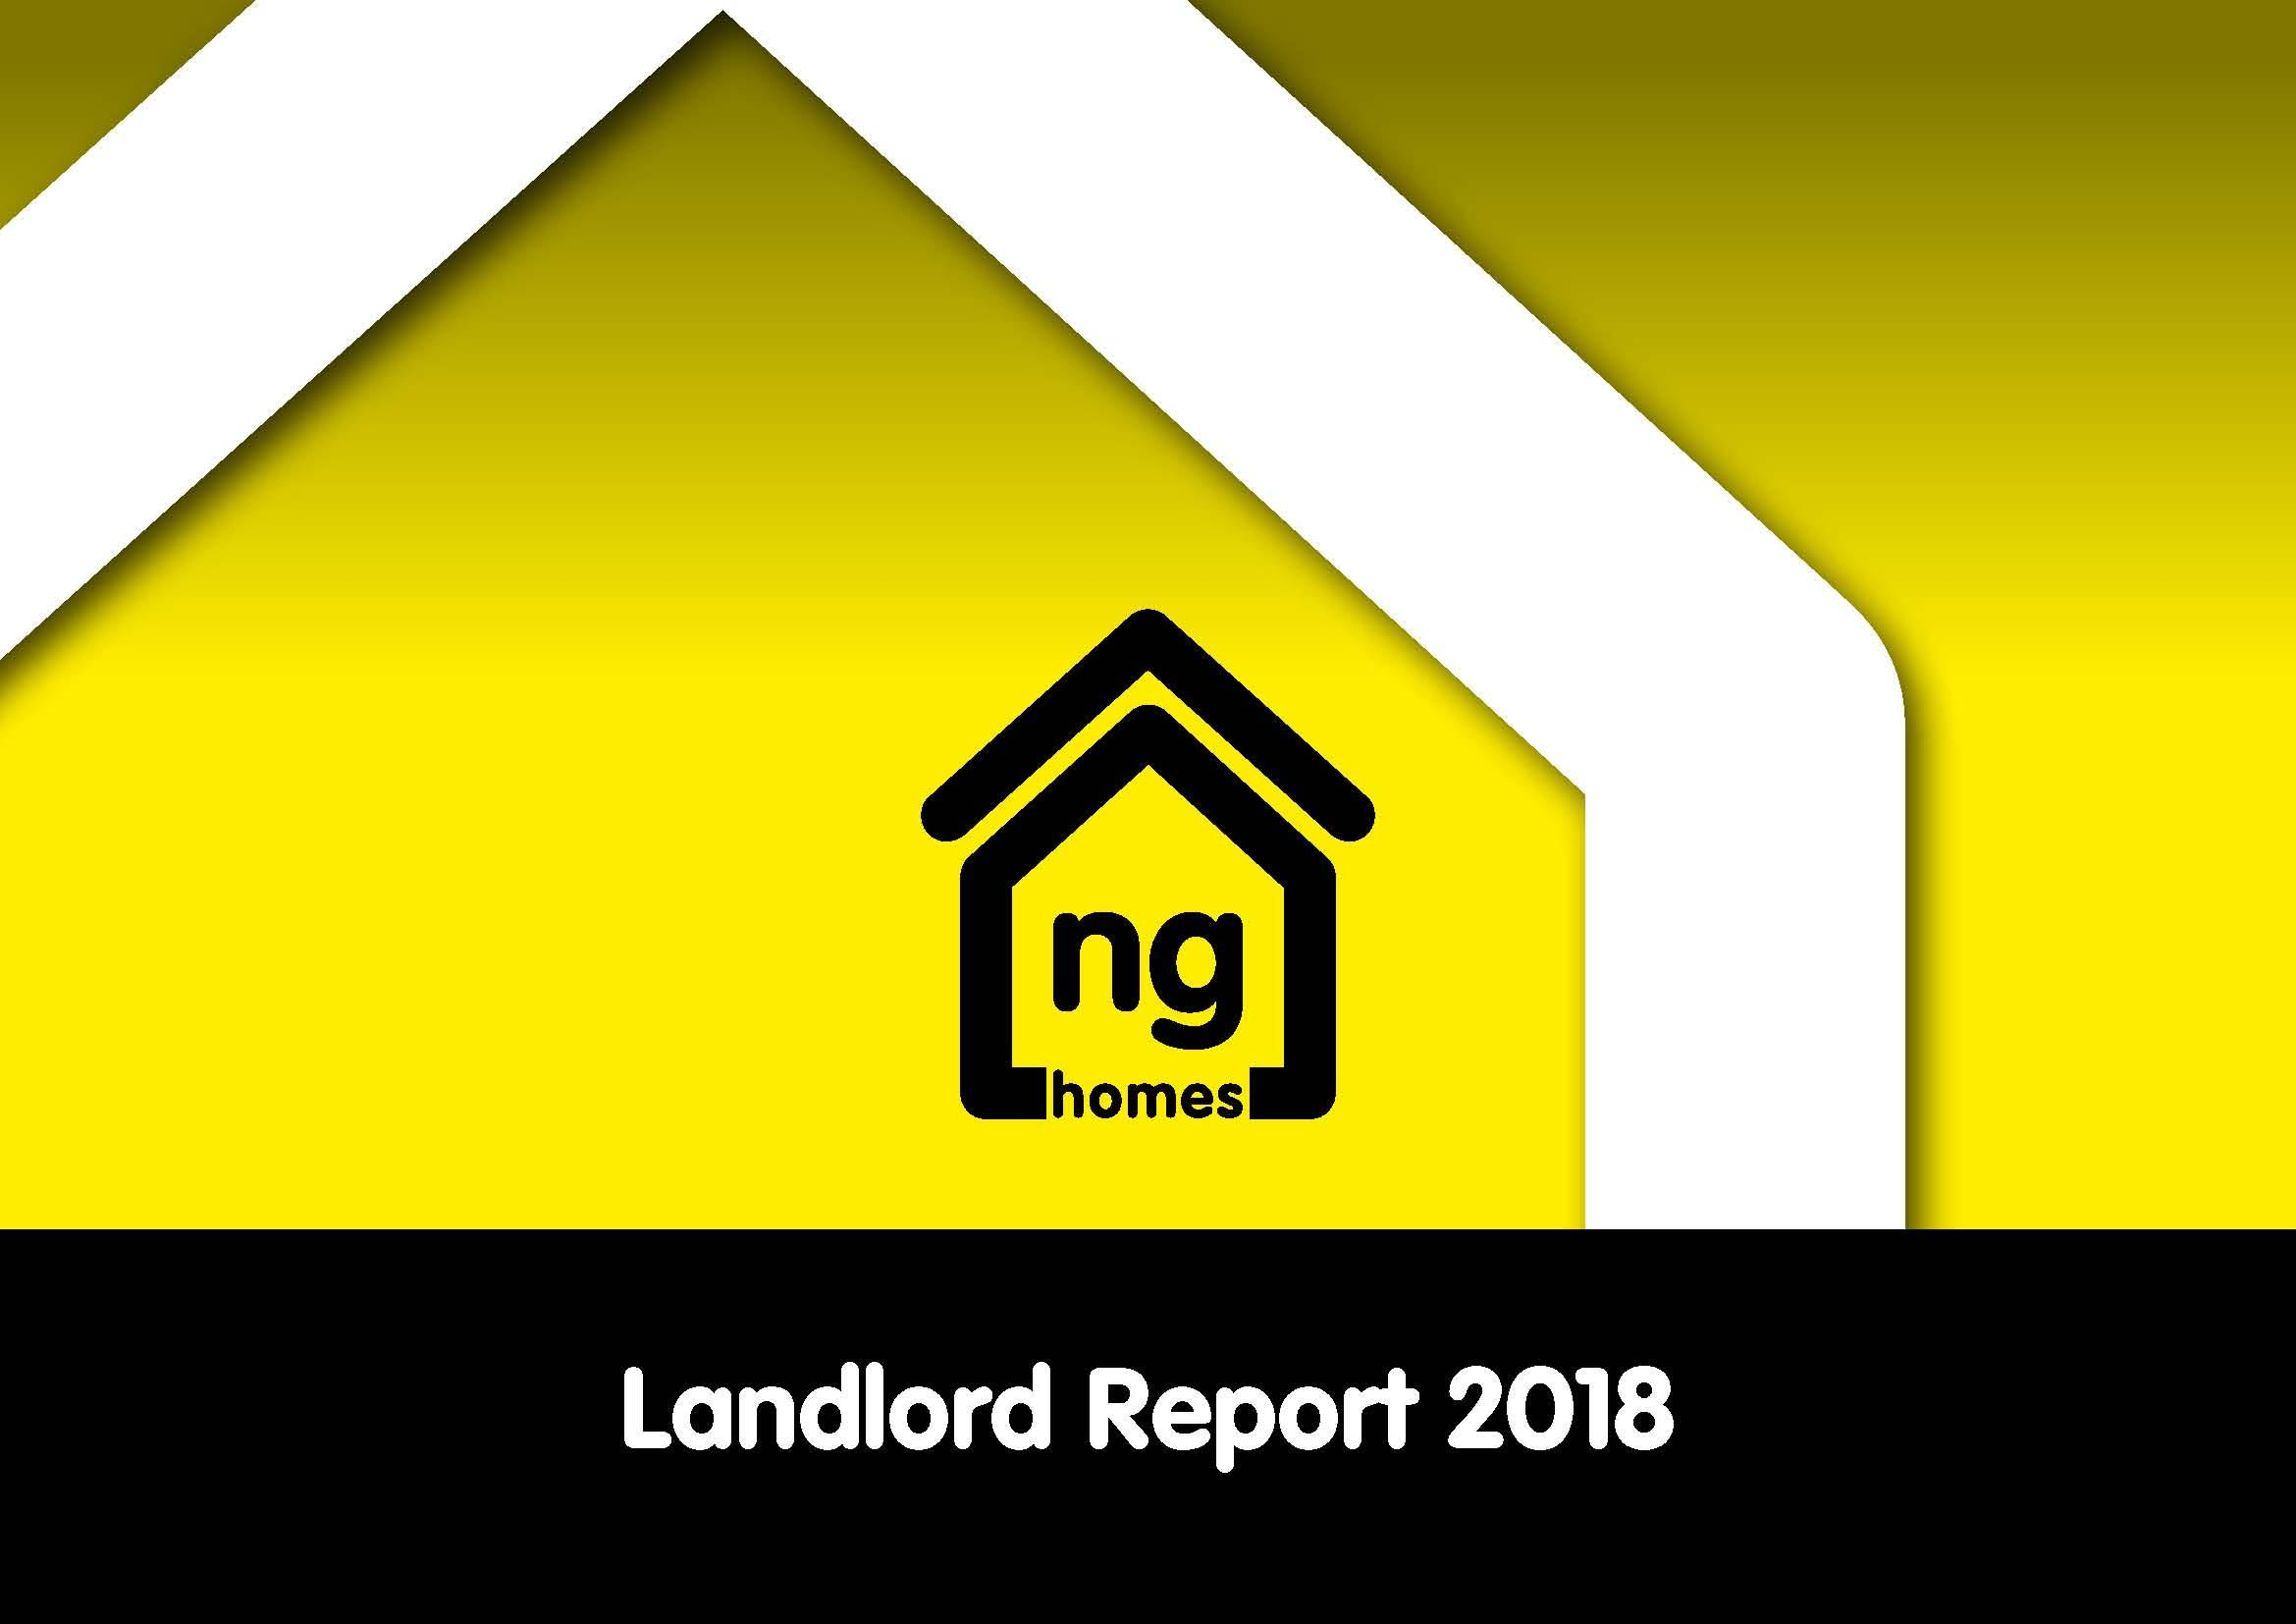 Ng Homes Landlord Report 2018